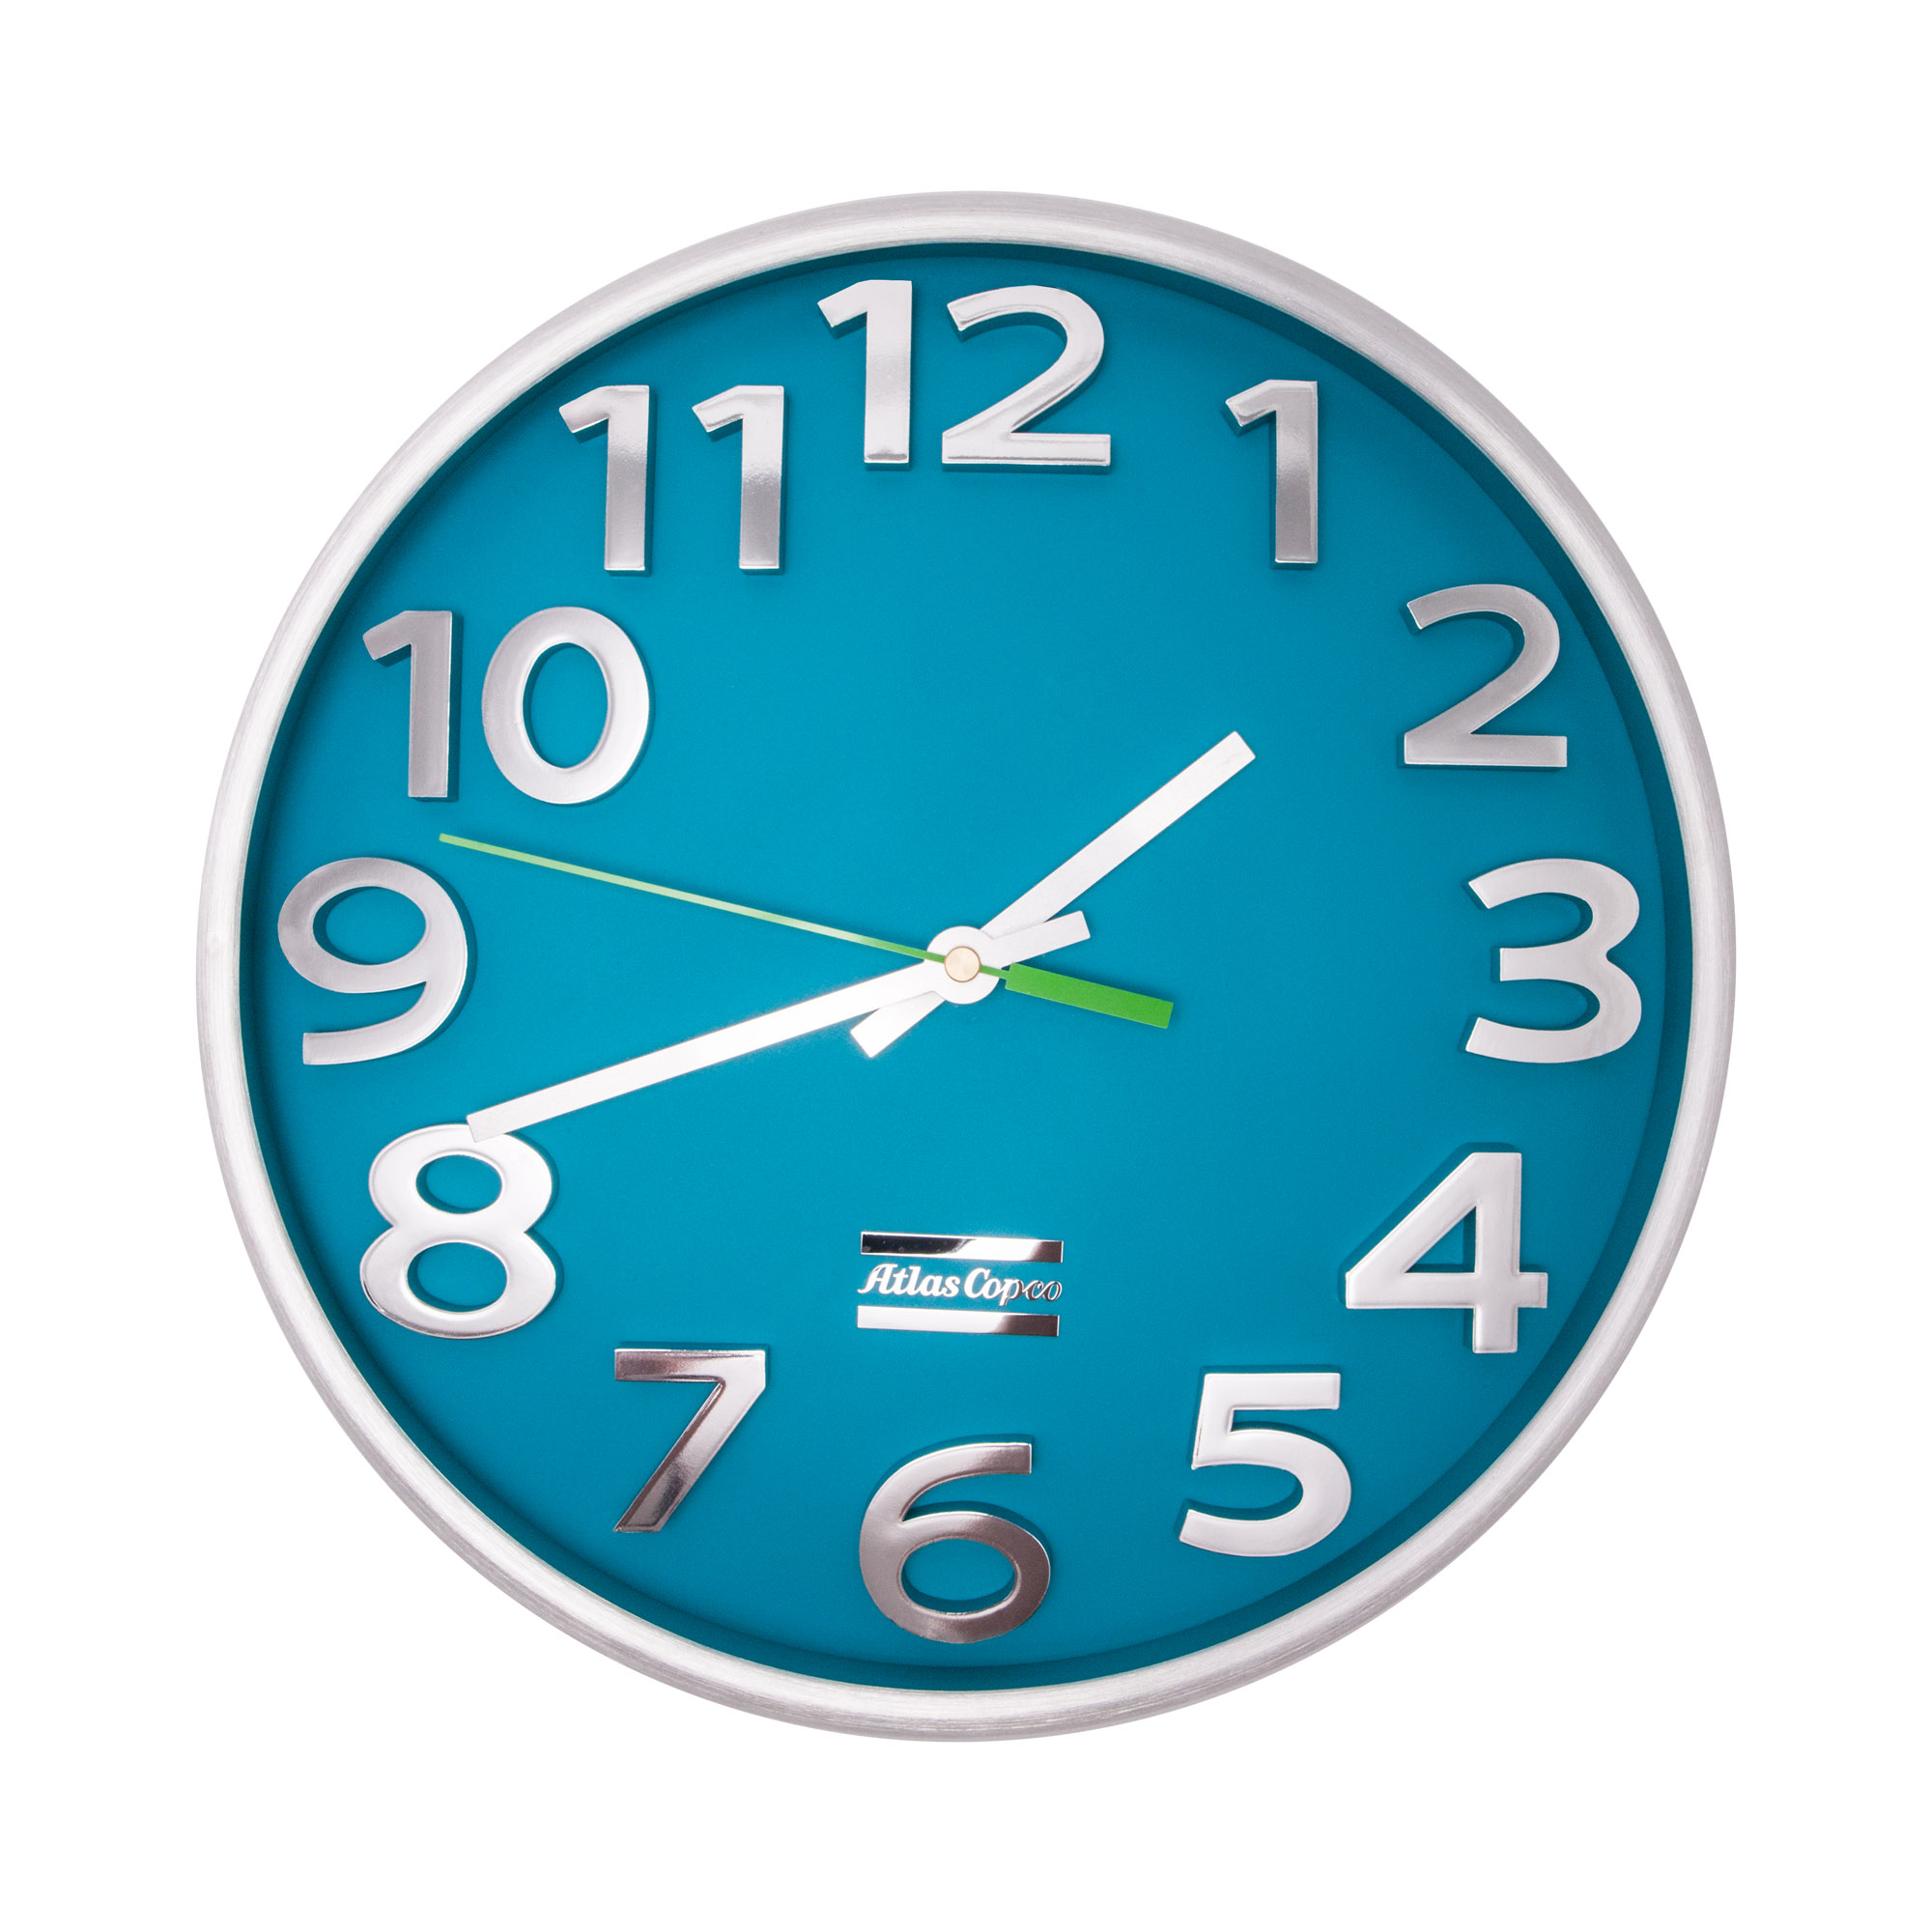 A fashionable Atlas Copco wall clock for any room. This stylish clock has raised chrome digits and a smooth Young Town quartz clock movement.